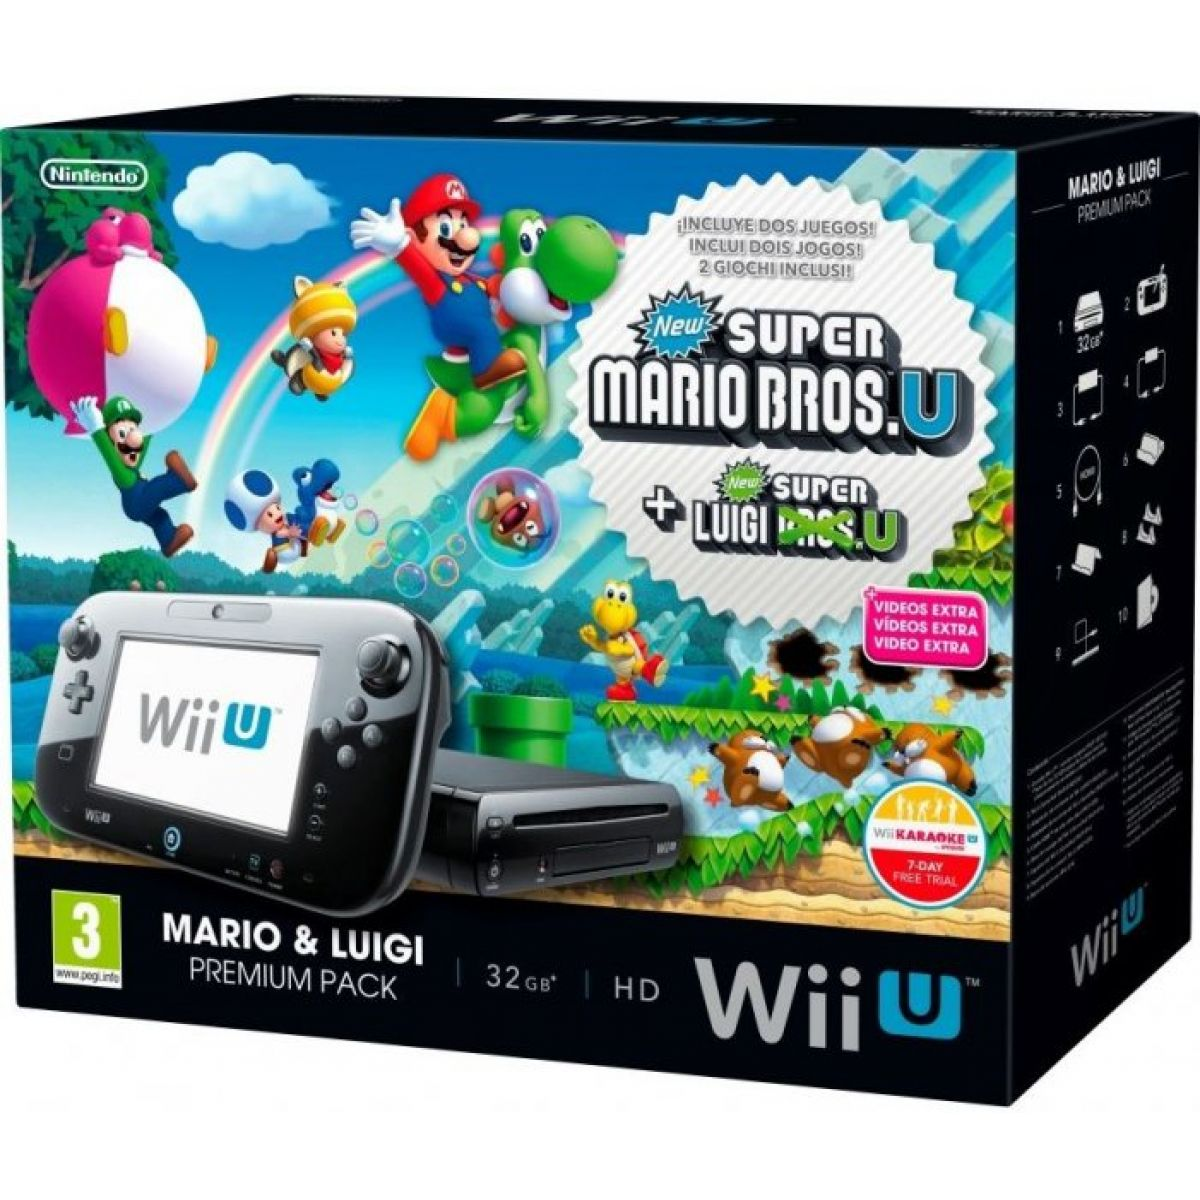 Nintendo Wii U Black Premium Pack 32GB + New Super Mario Bros.U + New Super Luigi U